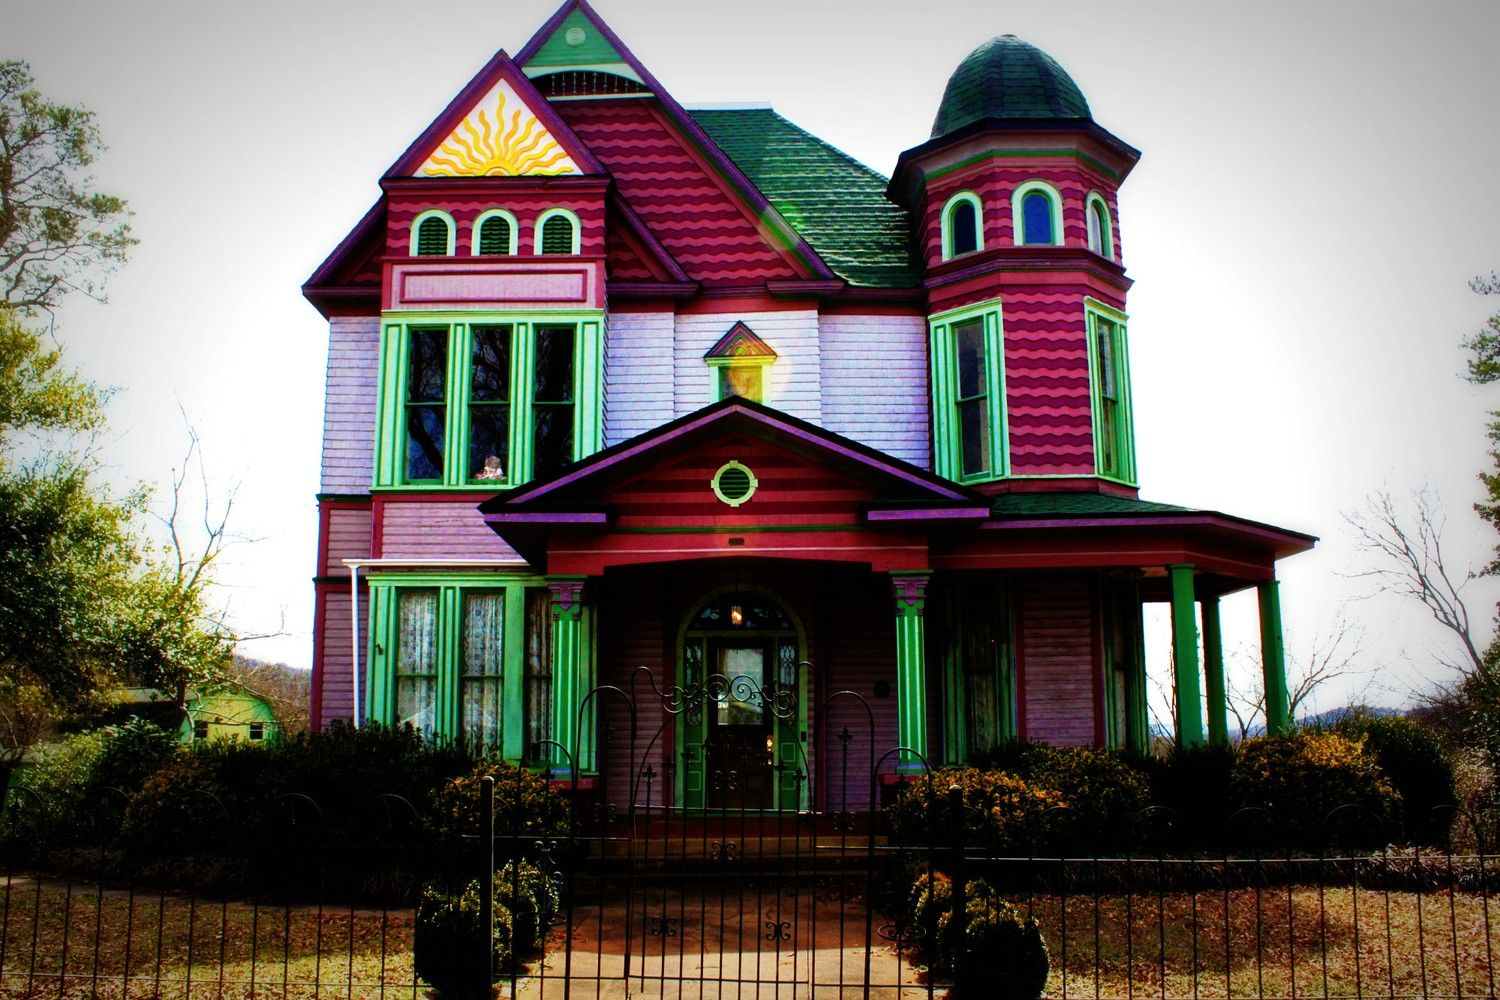 Victorian home plantation house vintage colorful pink purple green yellow blue pink vintage old southern alabama